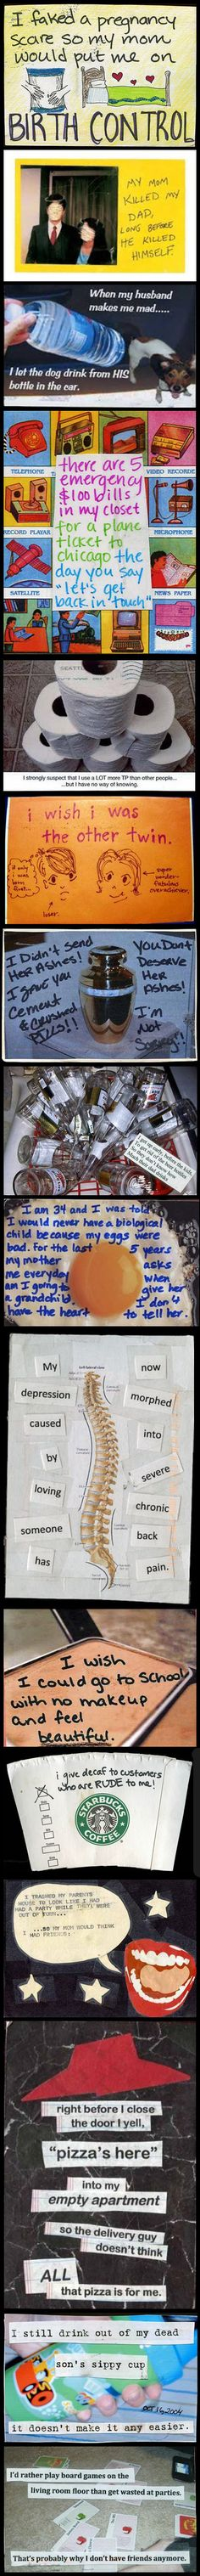 Before Confession Bear, it was all about Post Secret--I find post secret confessions fascinating.  You learn so much about people and sometimes see yourself in the confessions.